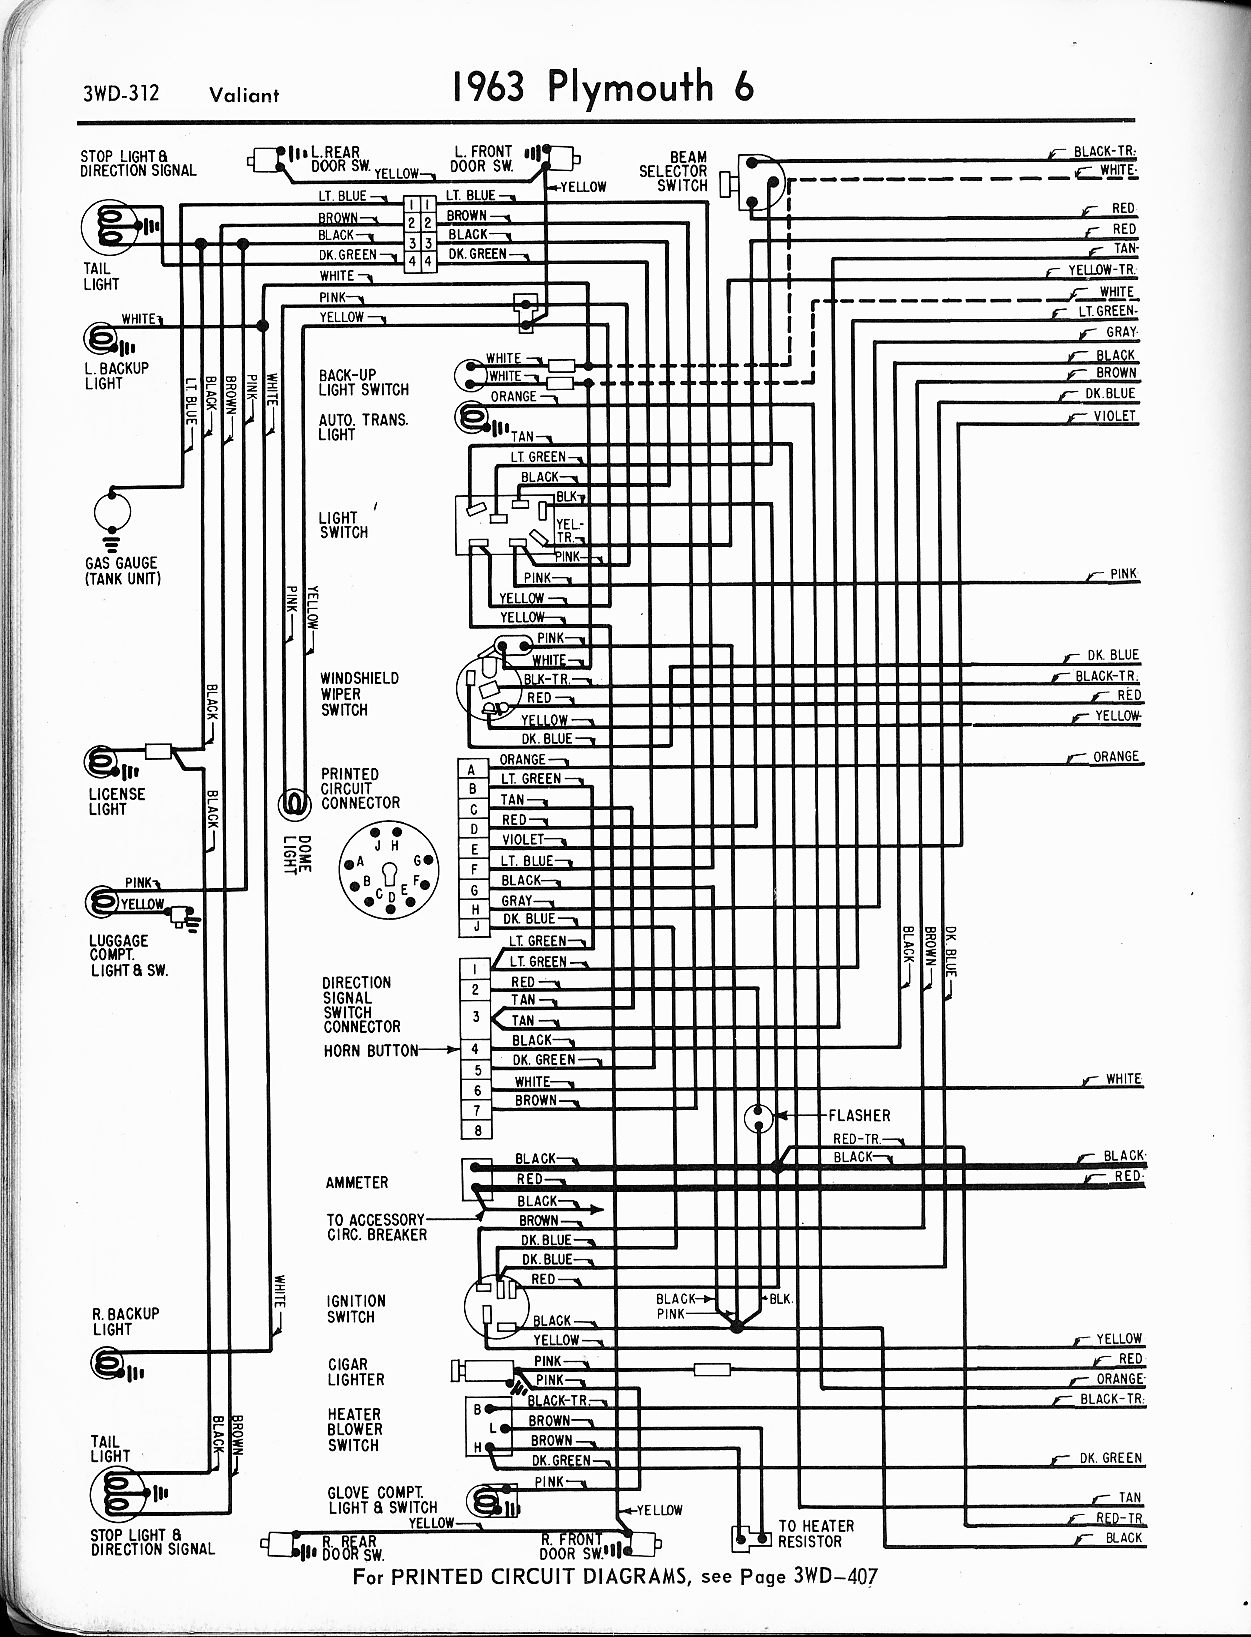 MWire5765 312 wiring diagram ply duster the wiring diagram readingrat net 3-Way Switch Light Wiring Diagram at aneh.co